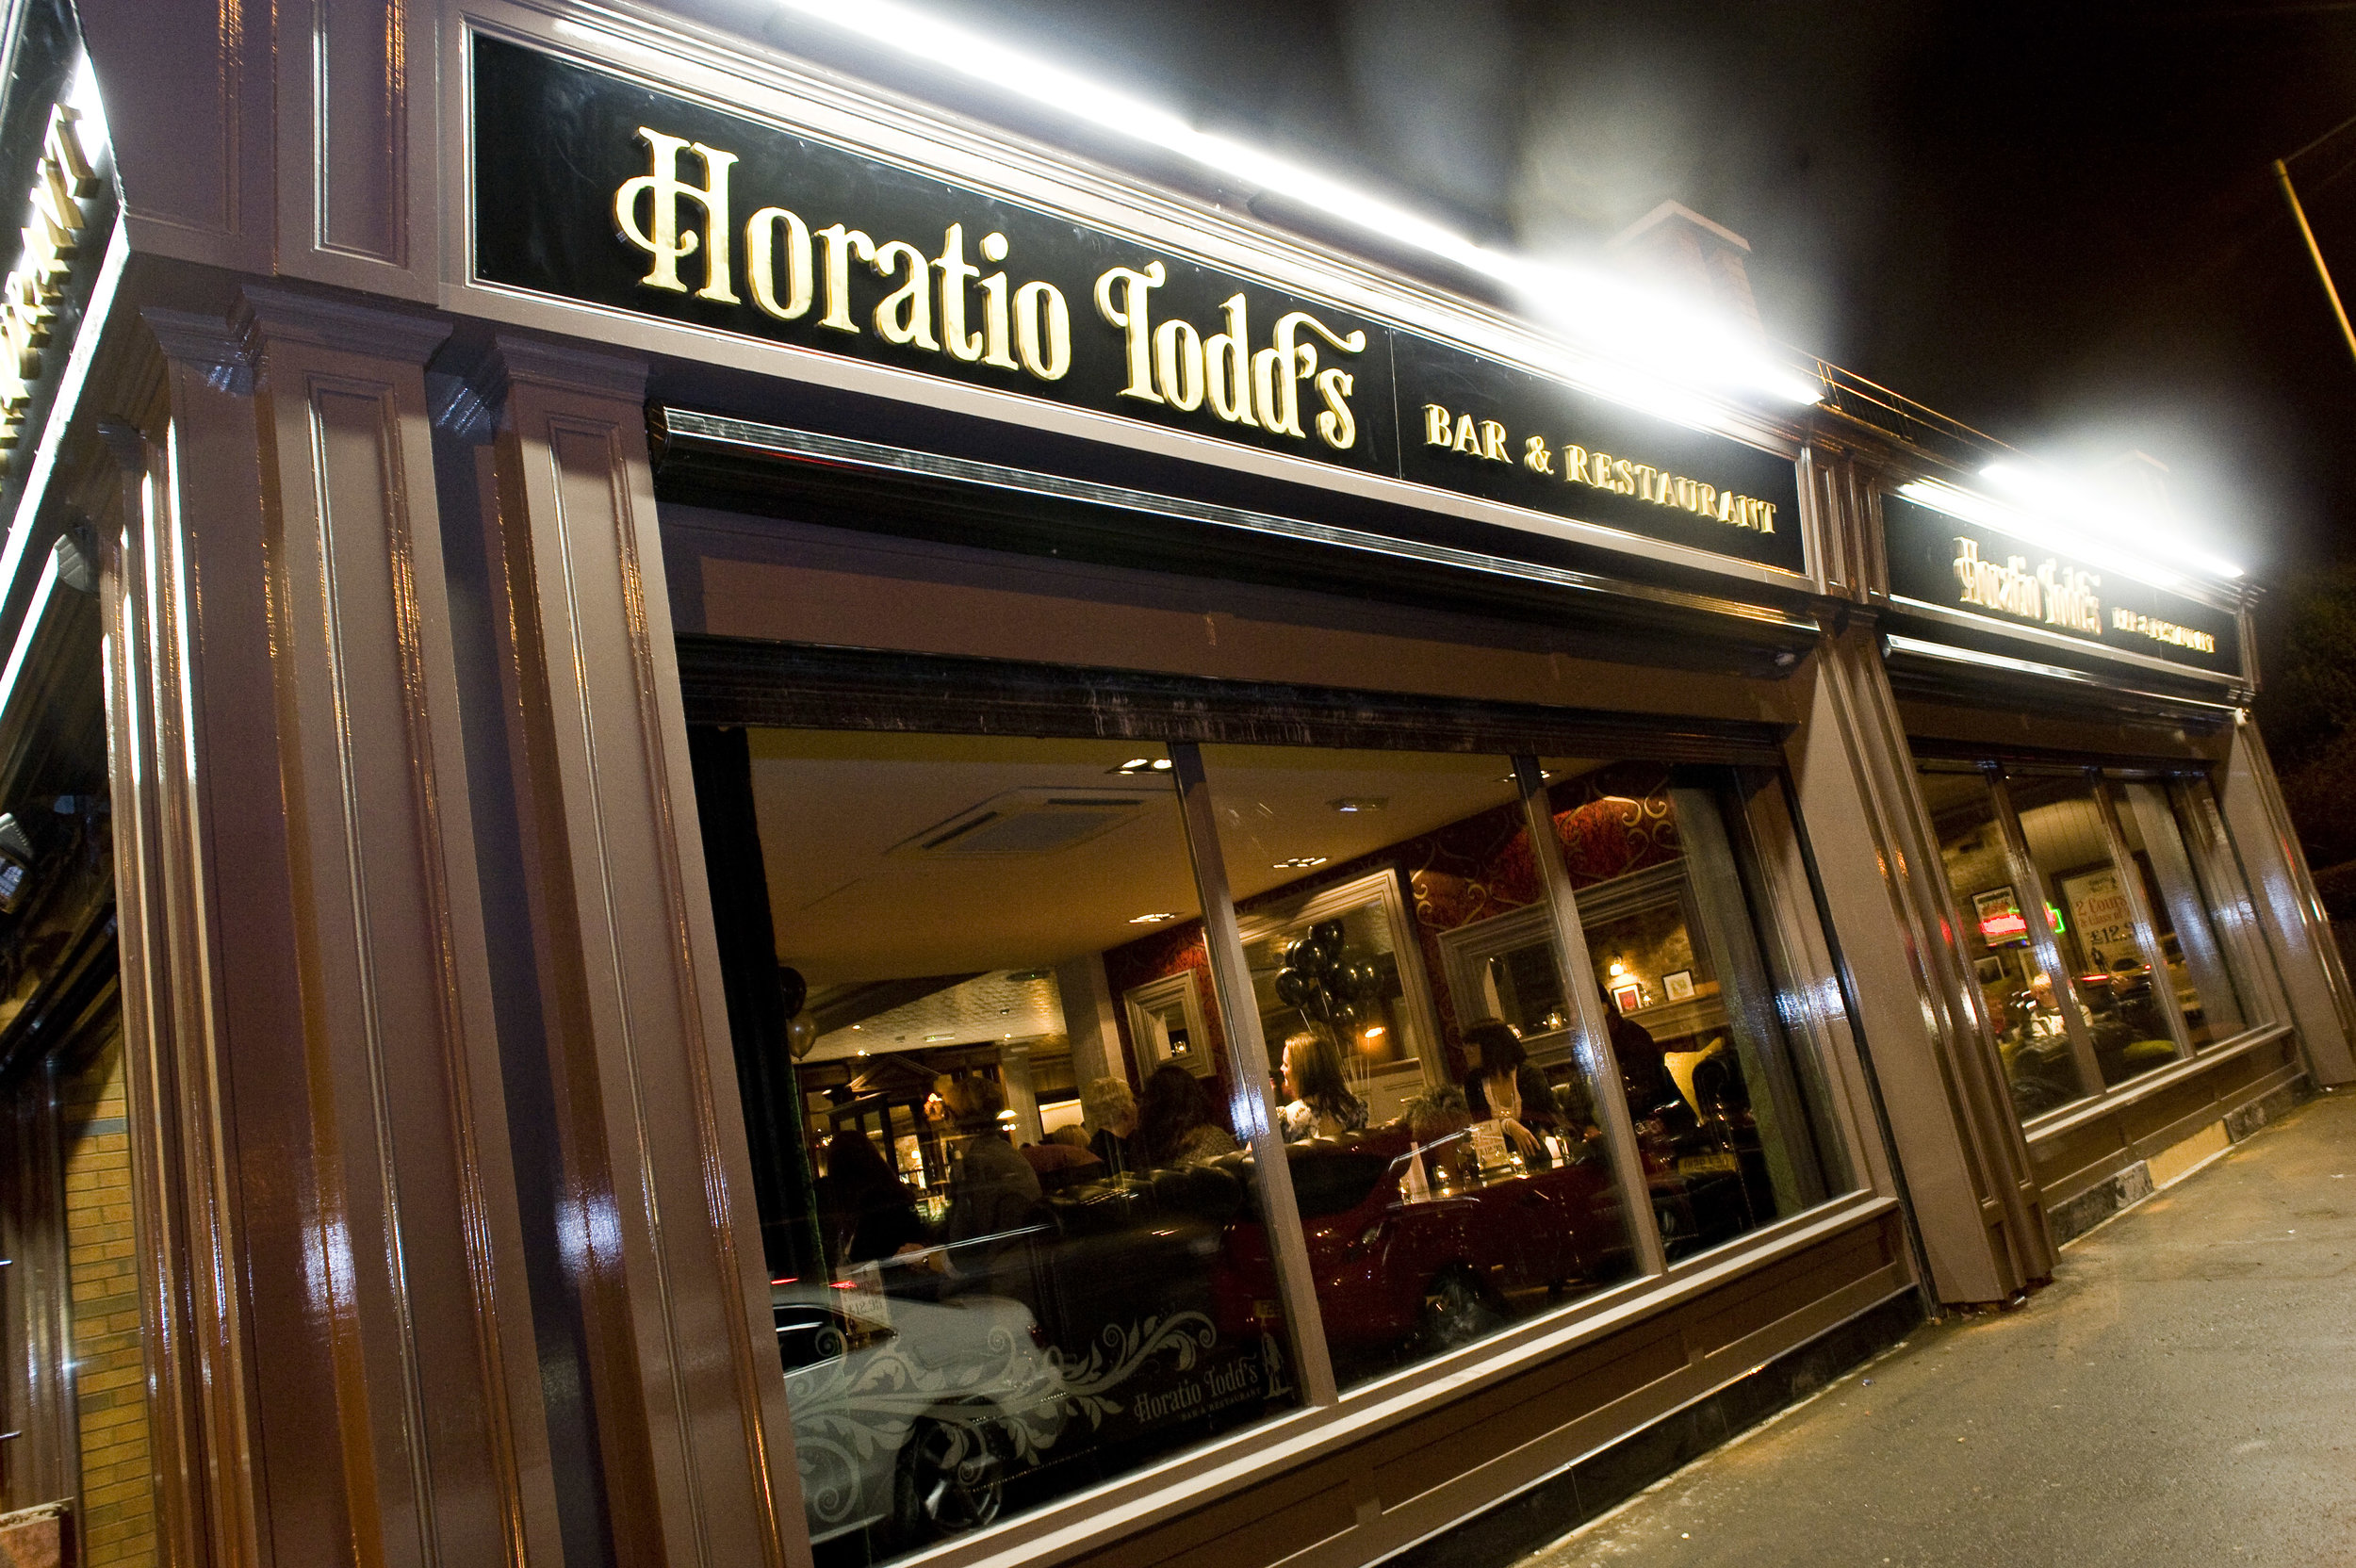 Horatio Todd's - Are currently recruiting for Chef de Partie & Commis Chef positions